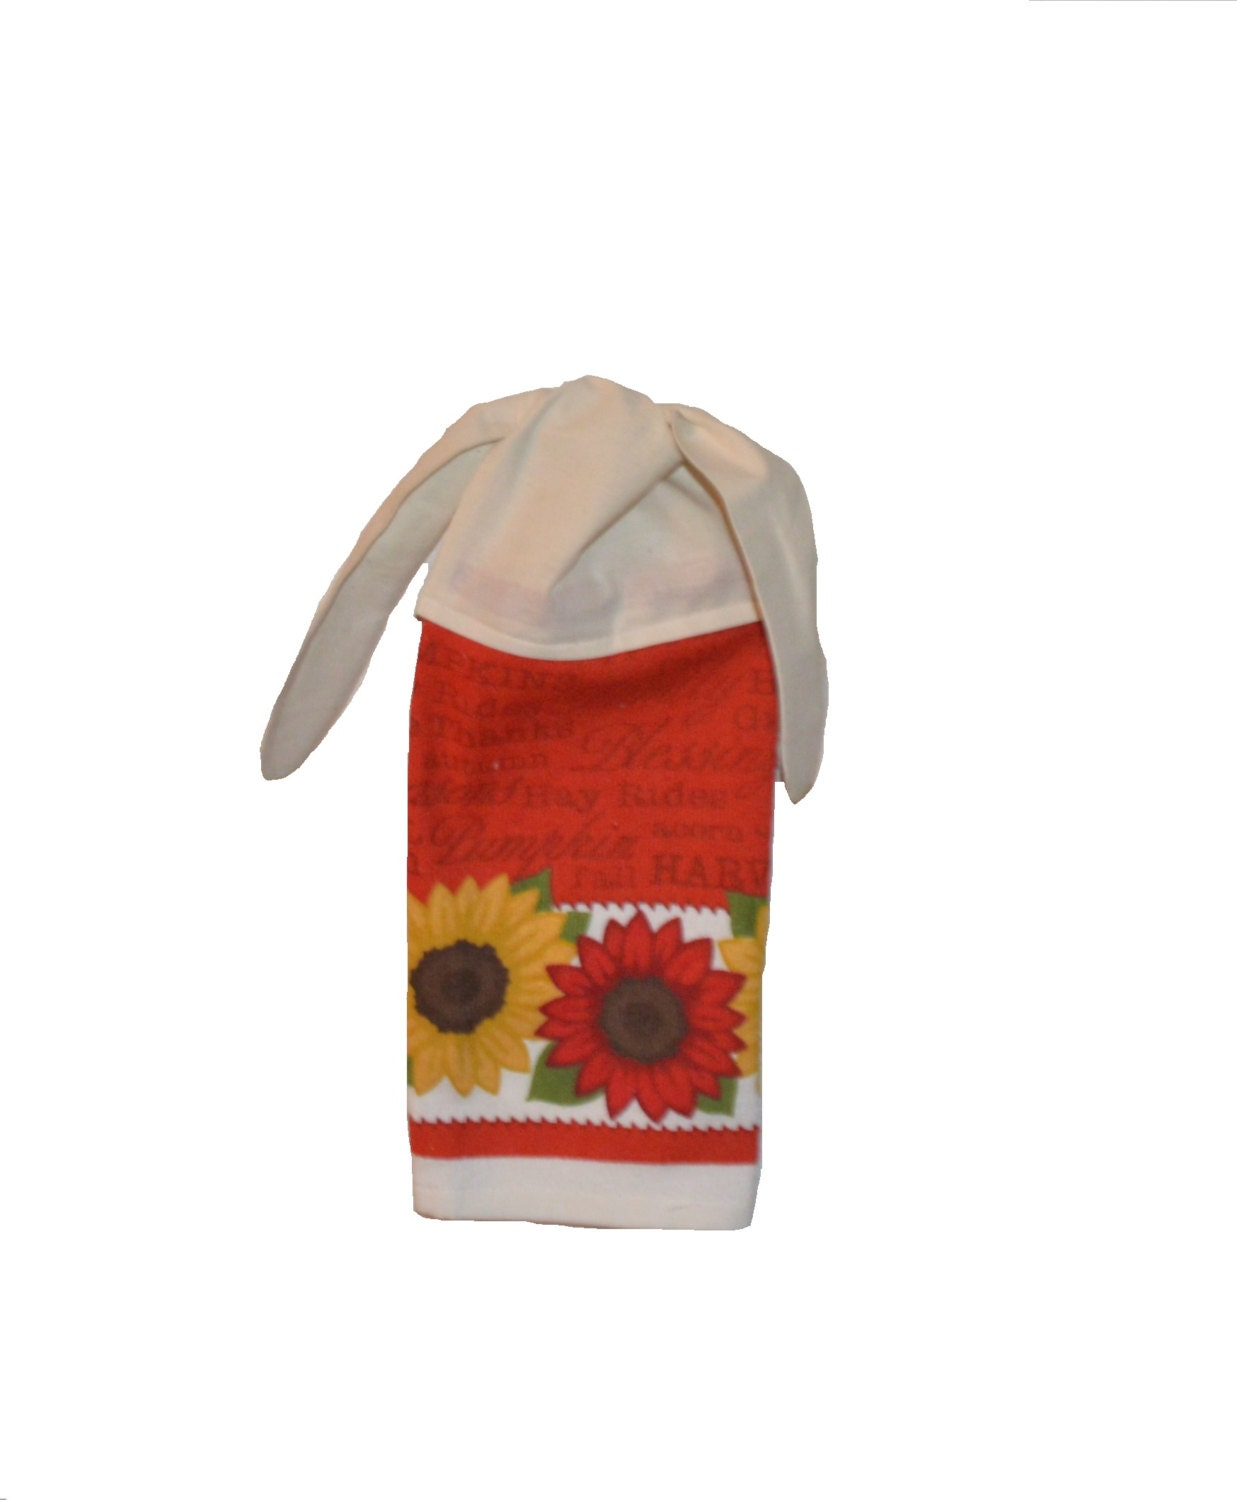 Red Kitchen Hand Towels: Red Sunflower Towel Kitchen Hand Towel Dish Towel By